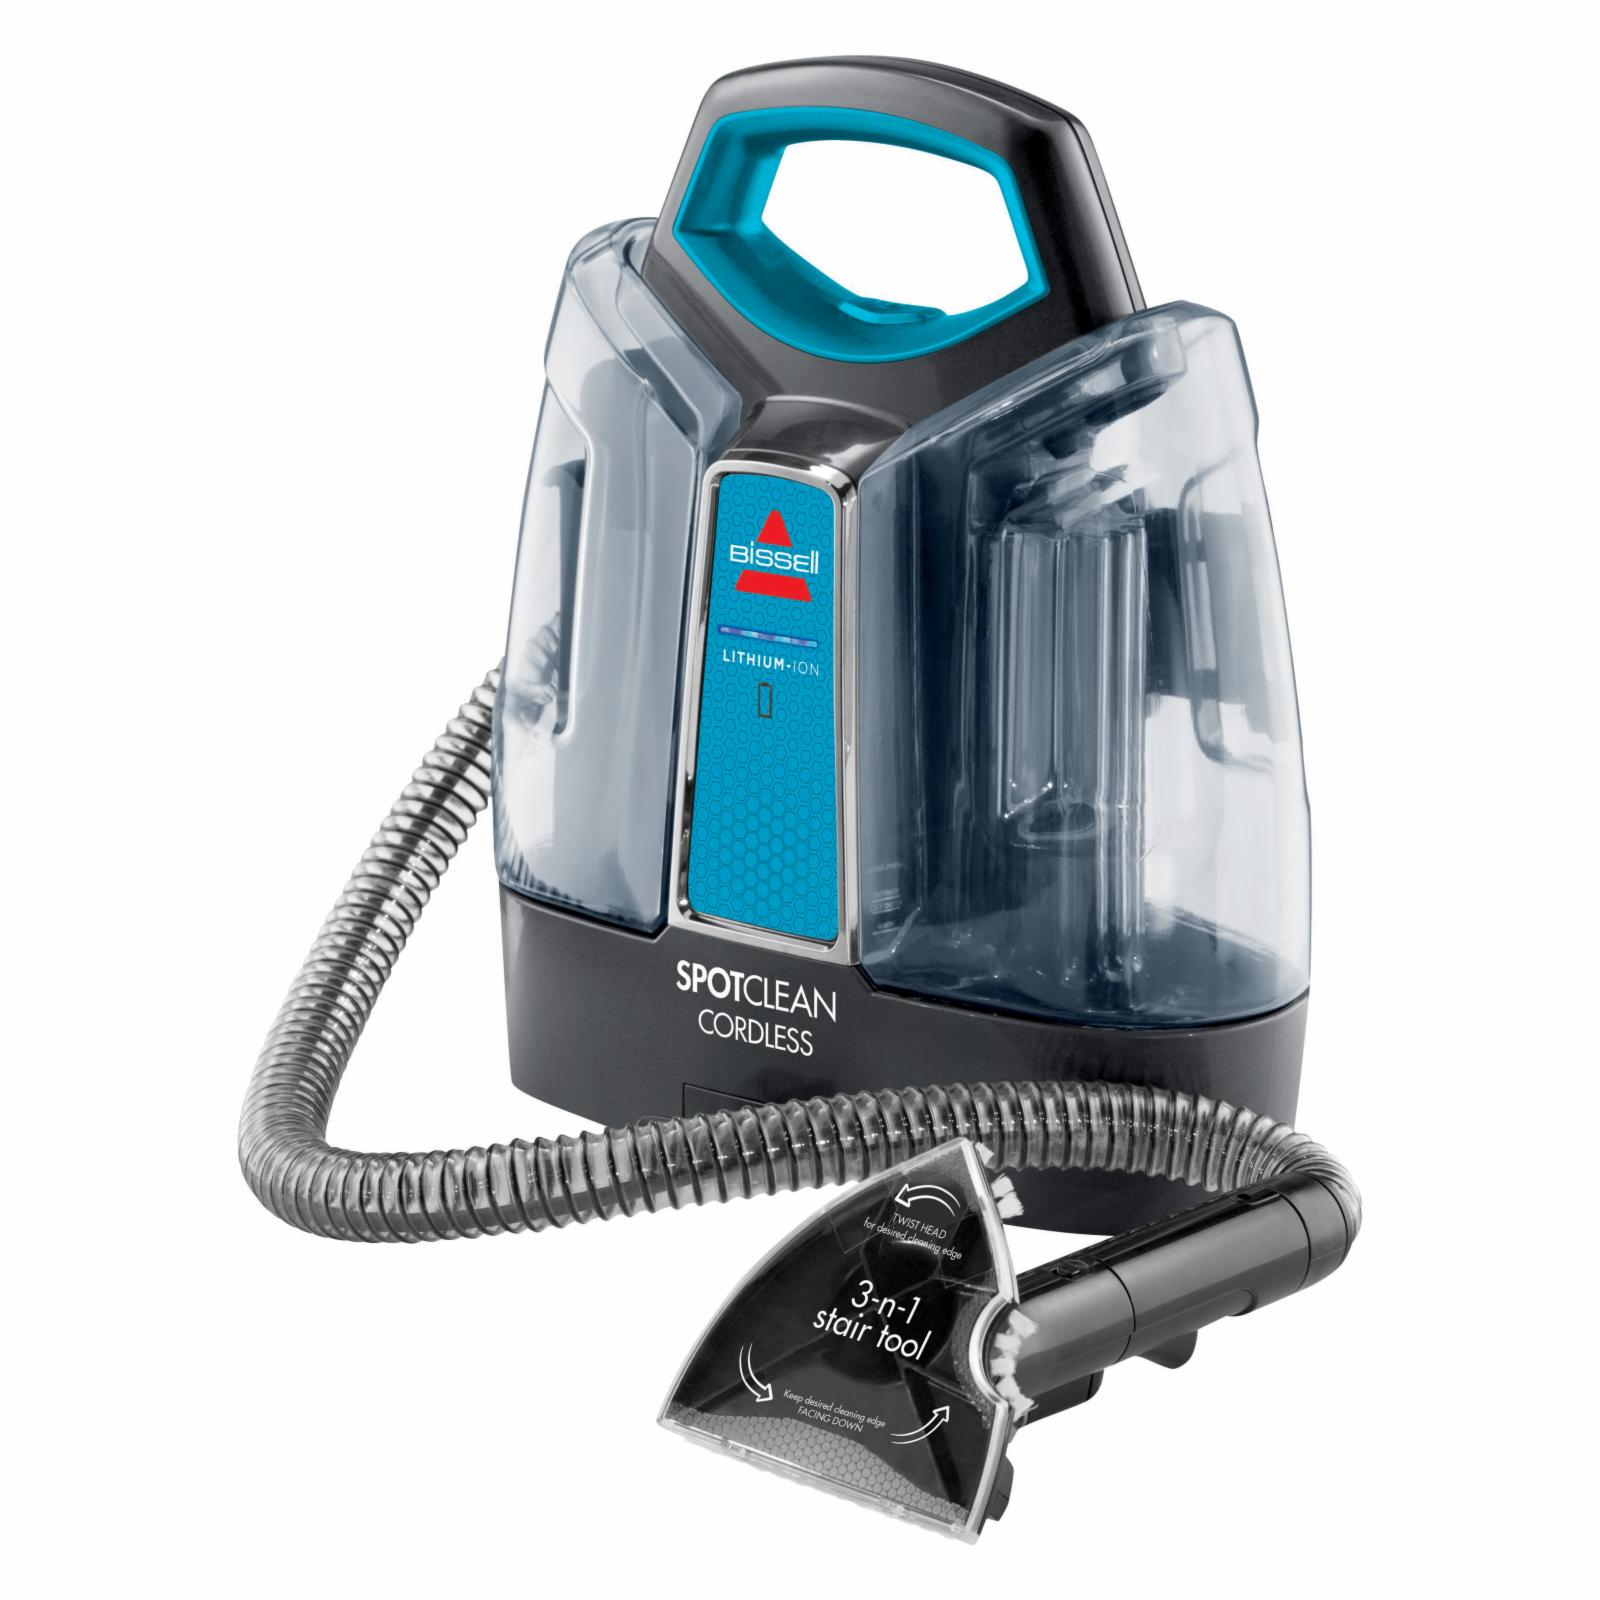 Bissell SpotClean Cordless Carpet Cleaner - 1570